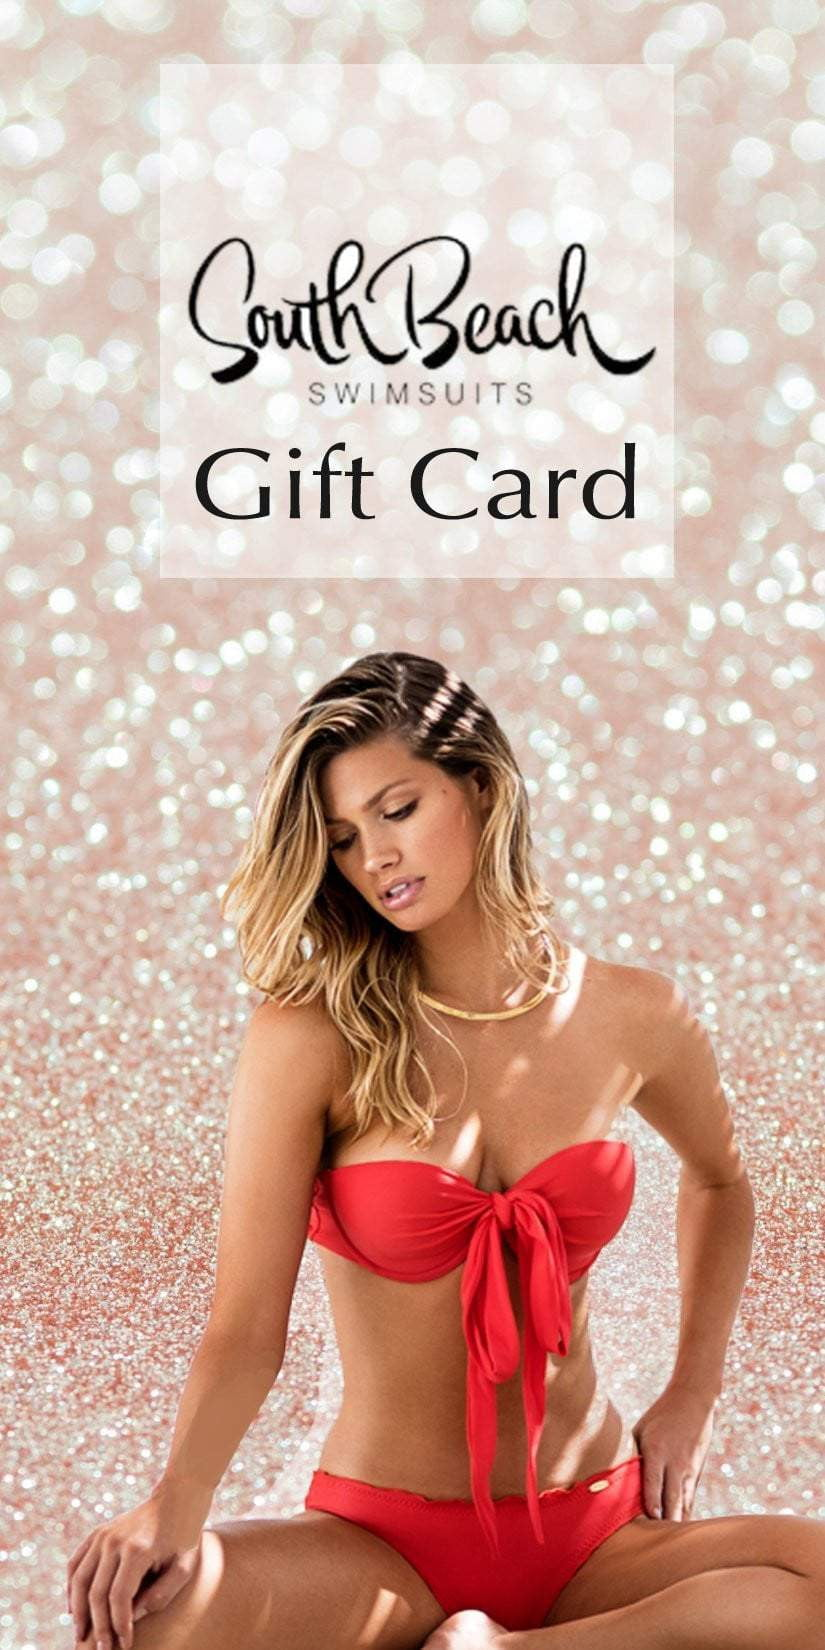 c6736ddad0 E-Gift Card – South Beach Swimsuits